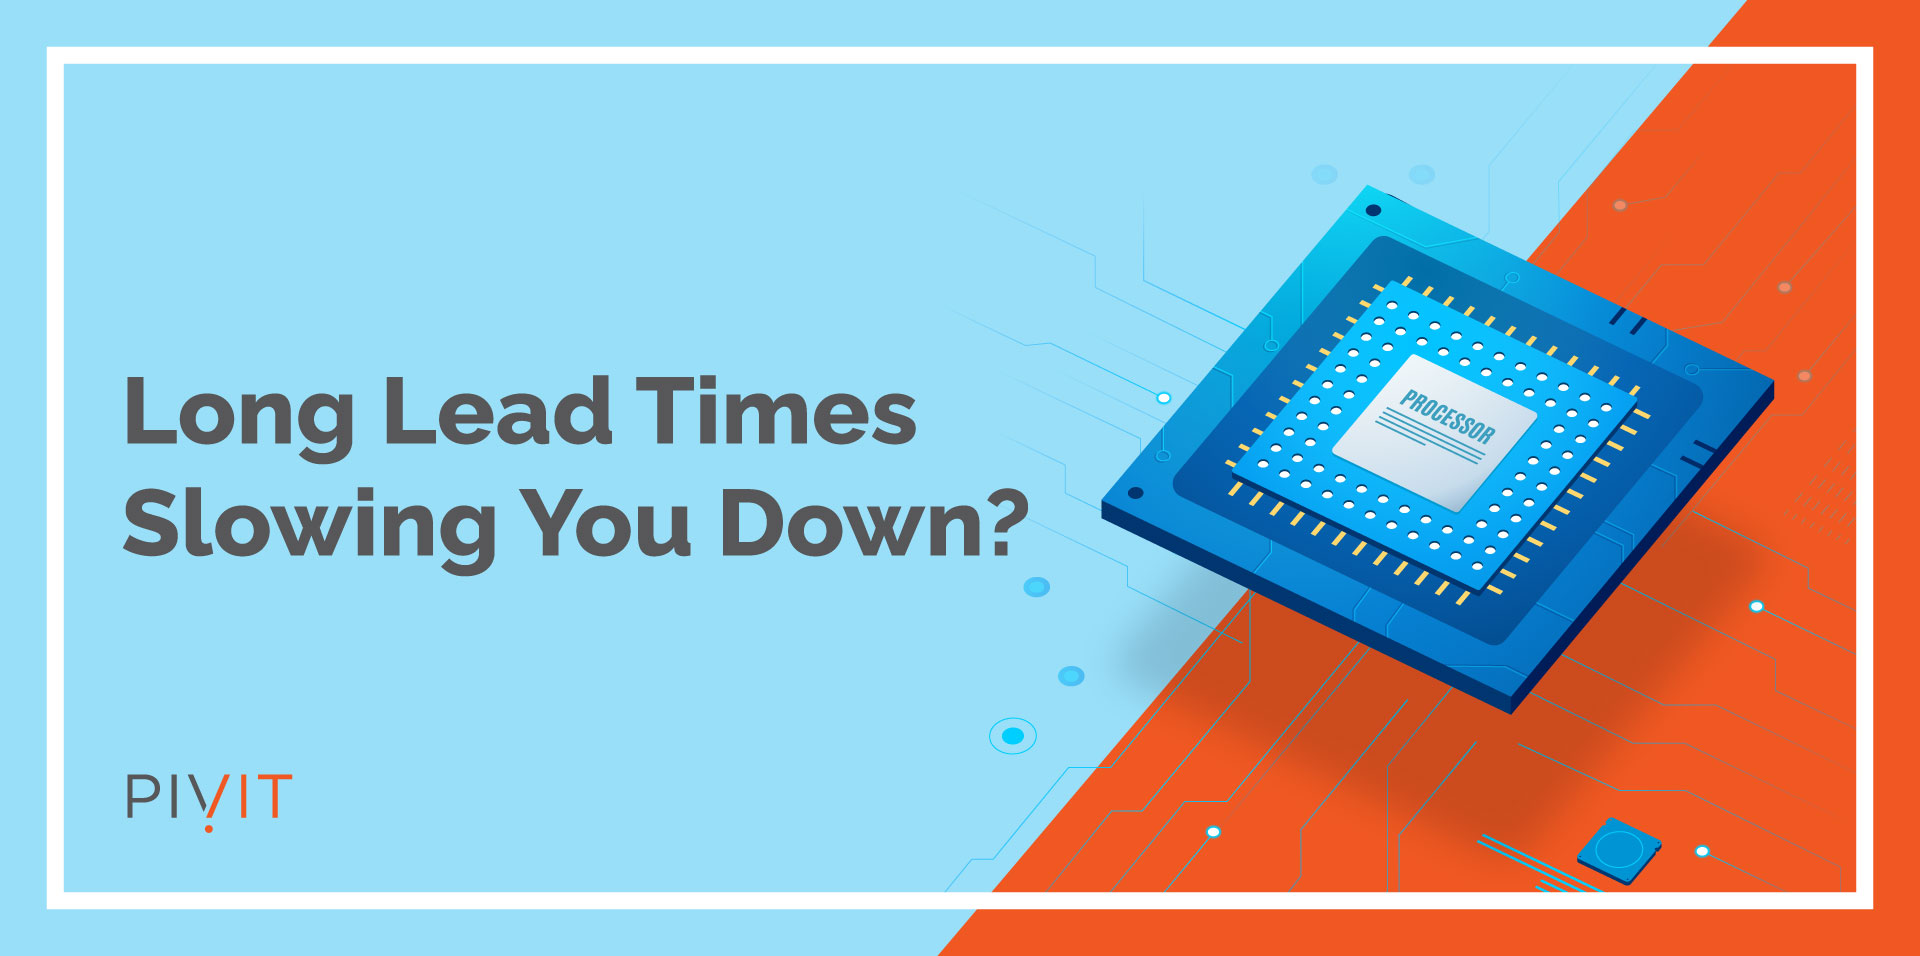 Chip Shortage Affecting Your Lead Times?